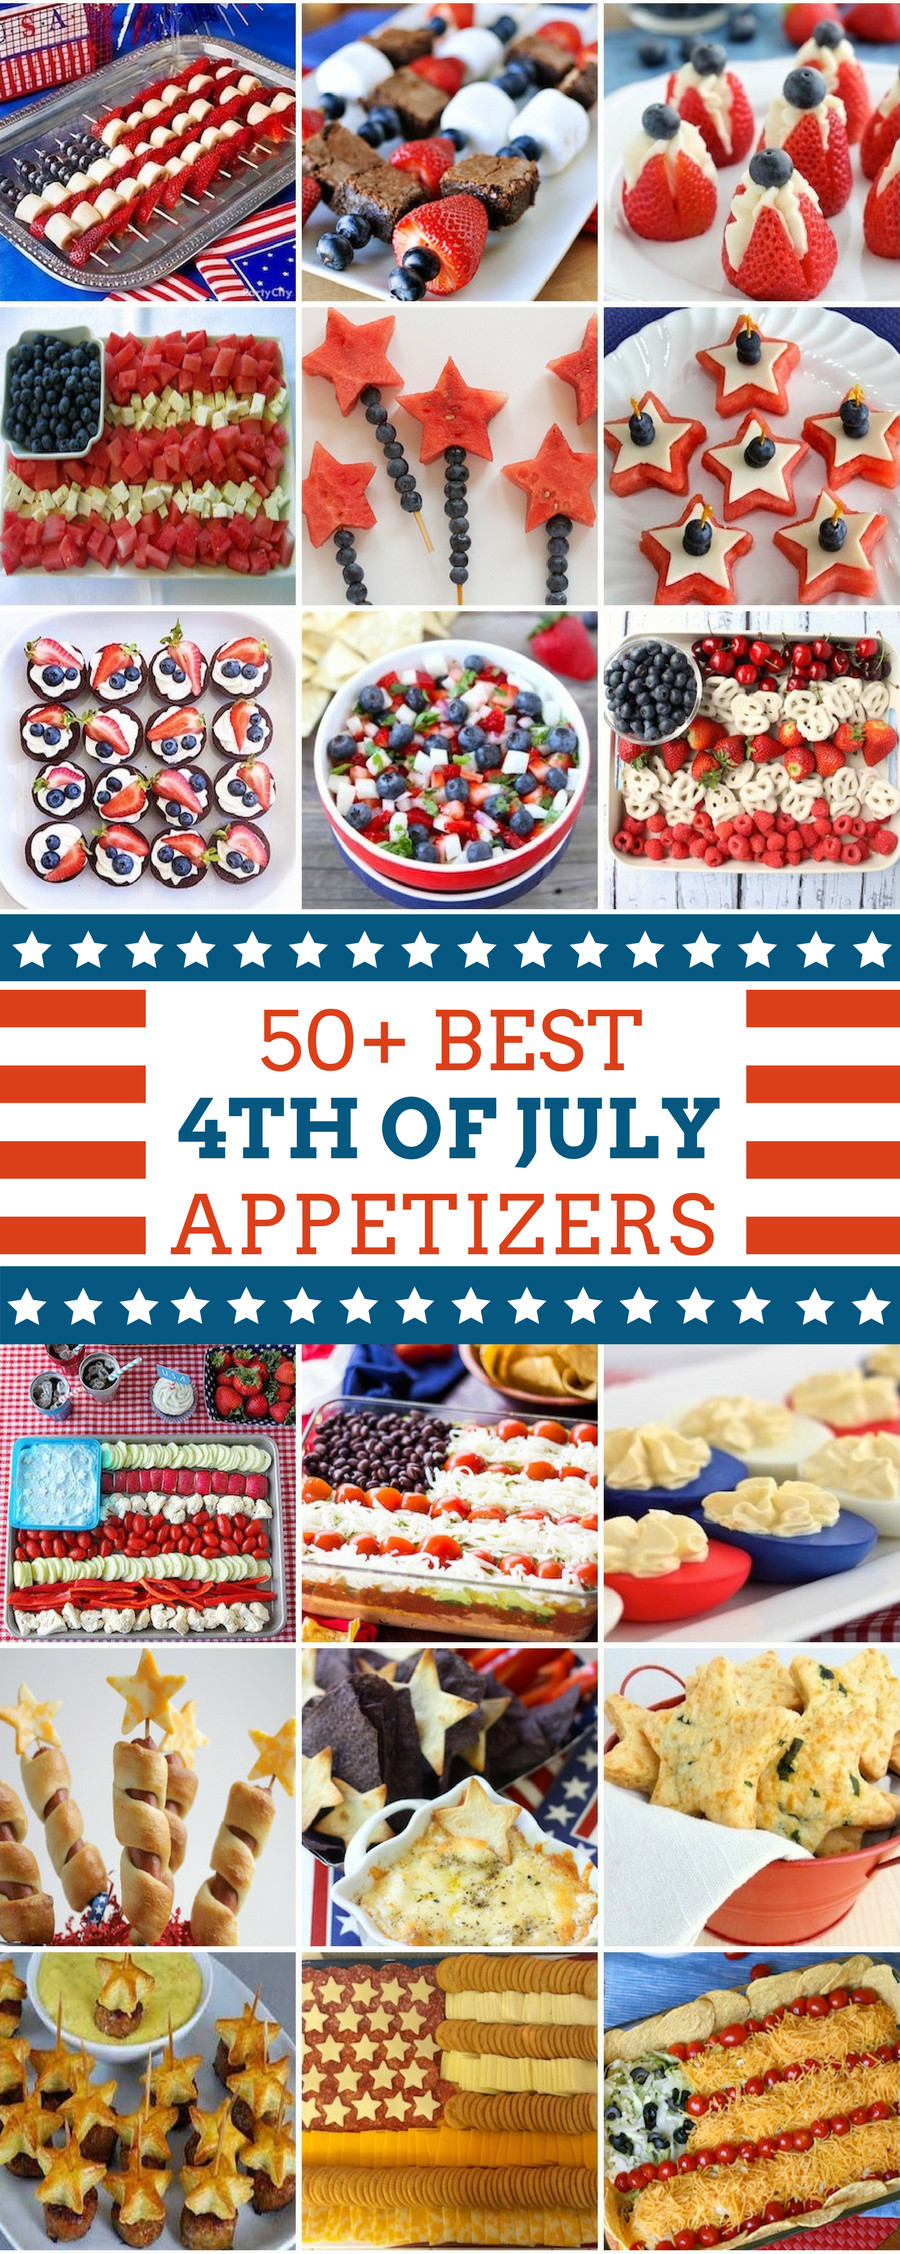 4Th Of July Appetizers  50 Best 4th of July Appetizers Prudent Penny Pincher